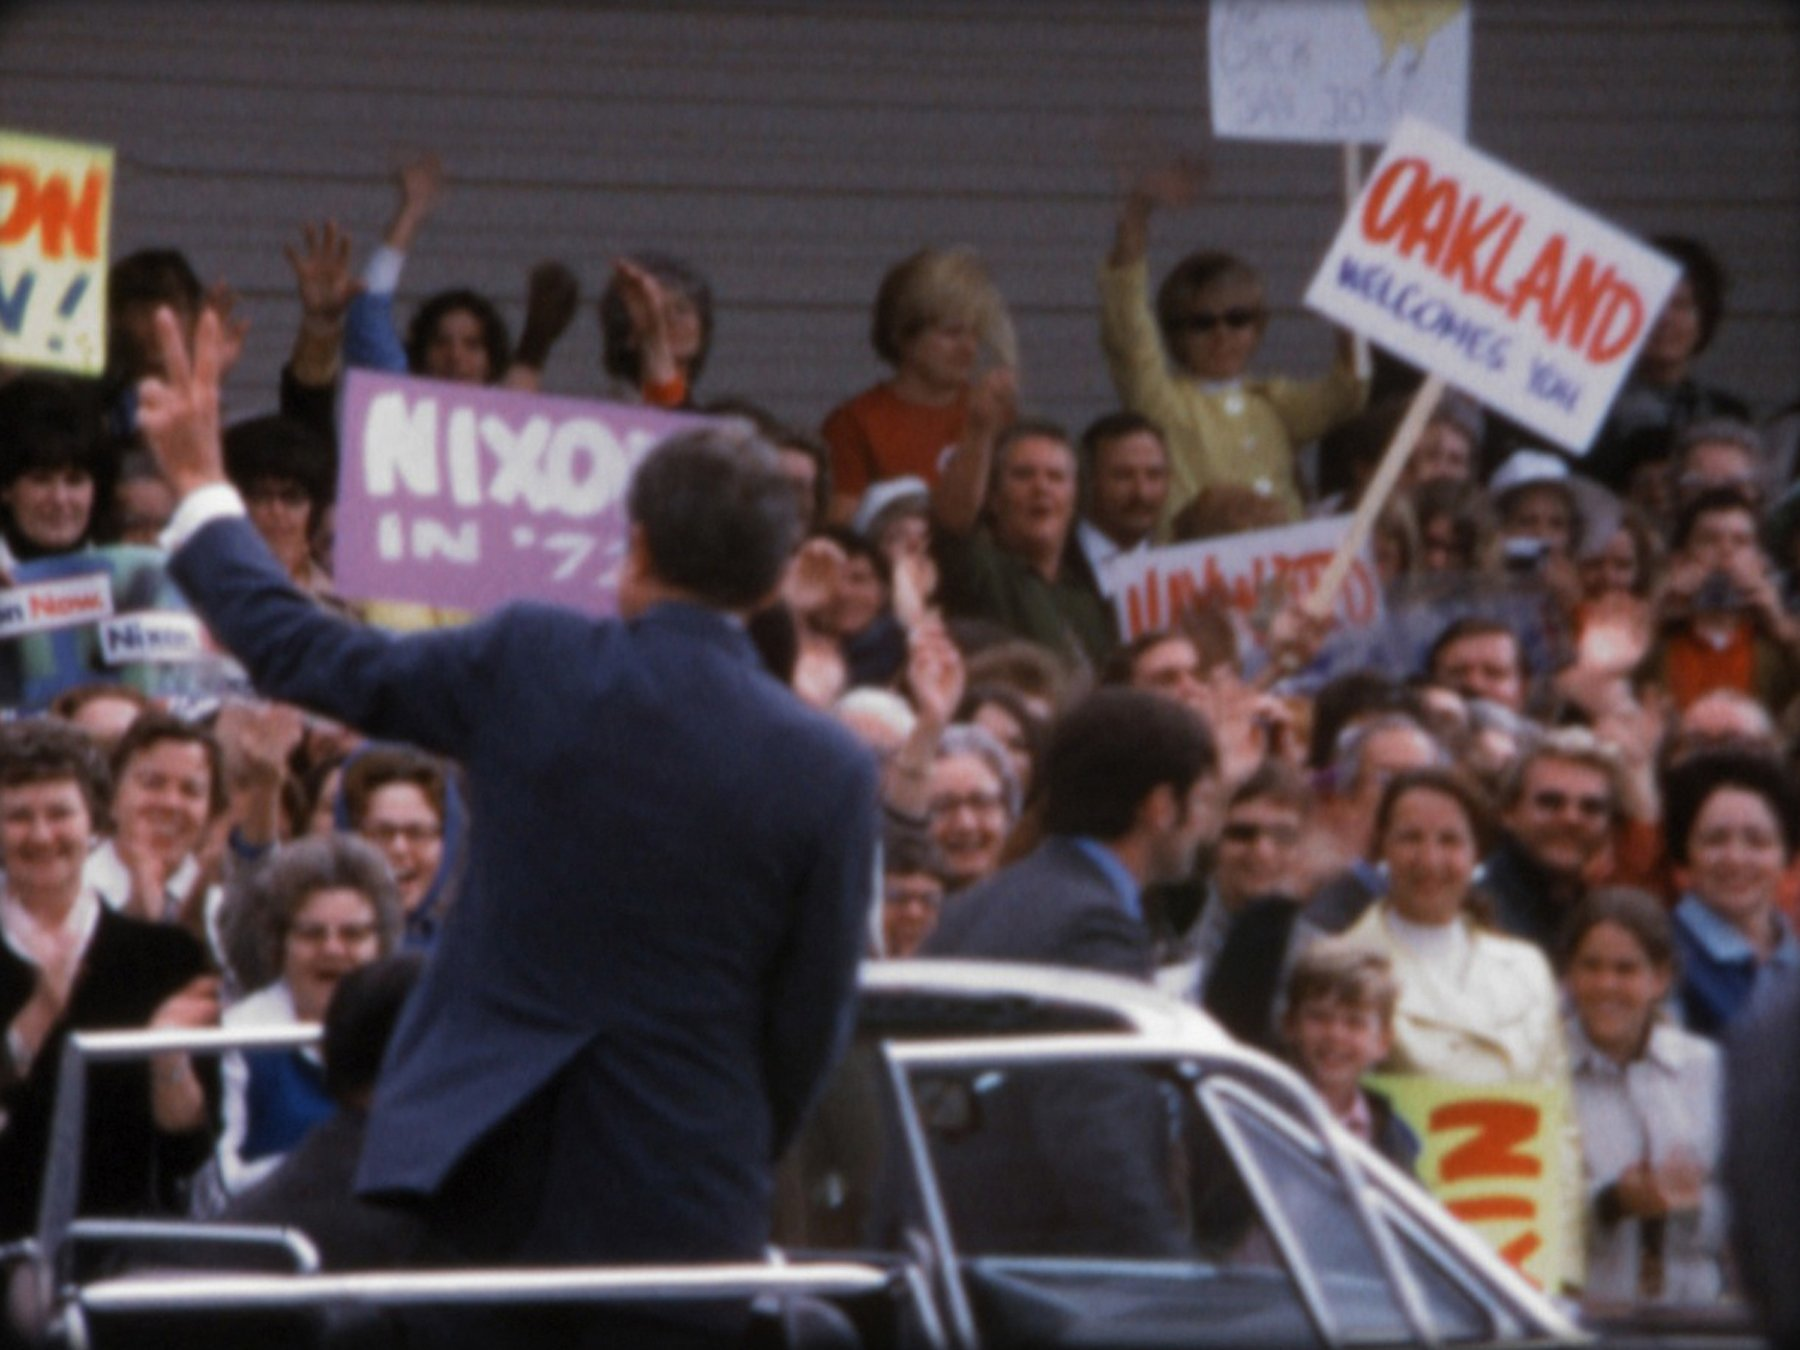 Cheering crowds greet President Nixon on the 1972 campaign trail in California. Super 8 film still courtesy of Dipper Films.